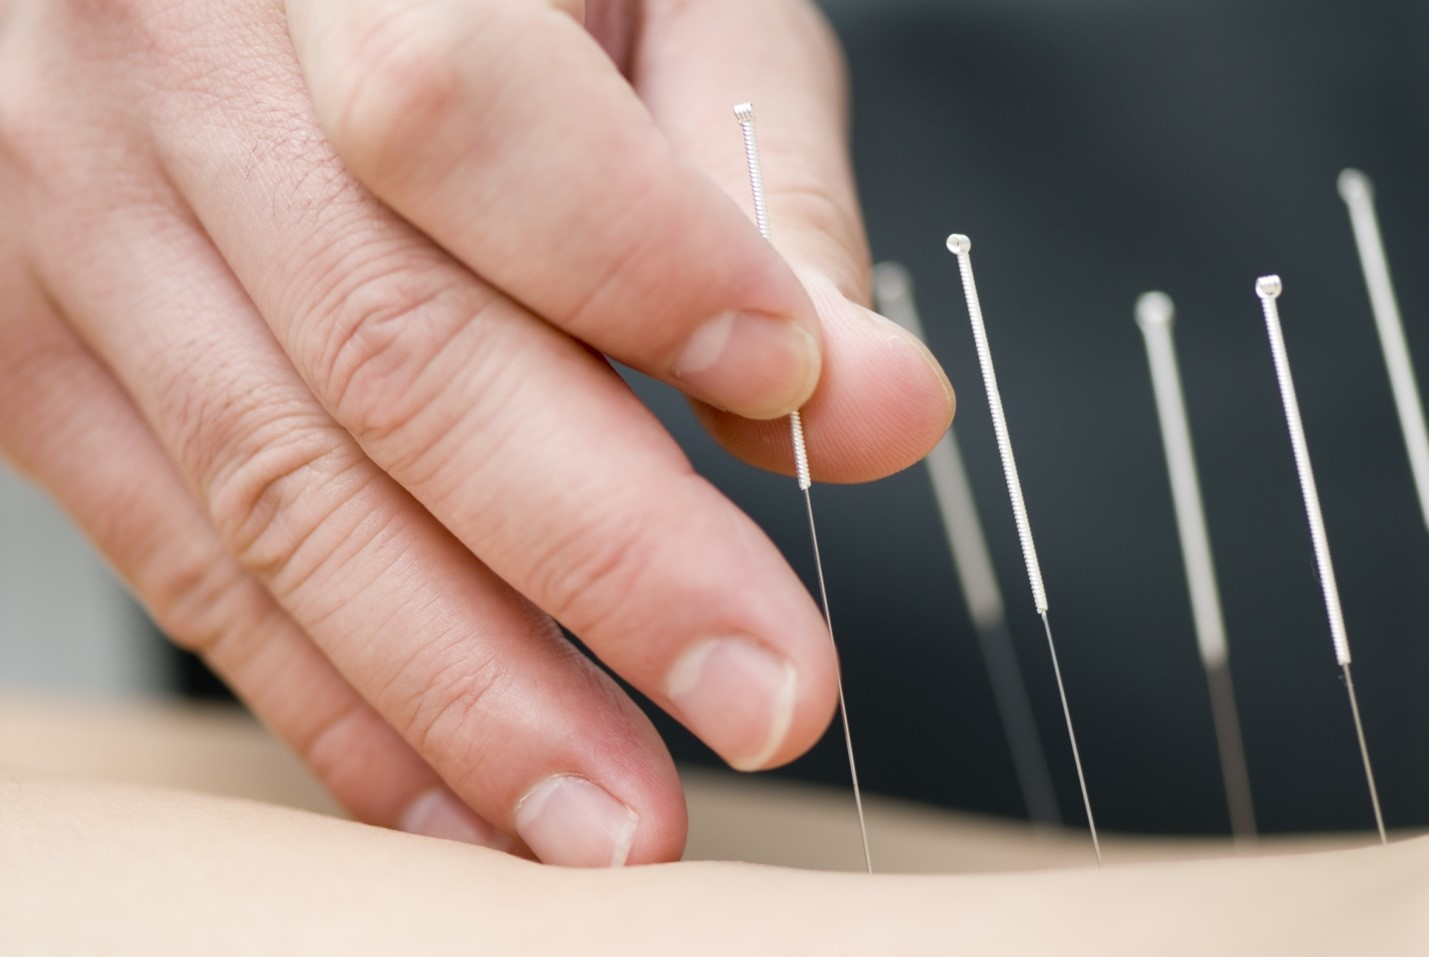 Acupuncture needles being applied to skin